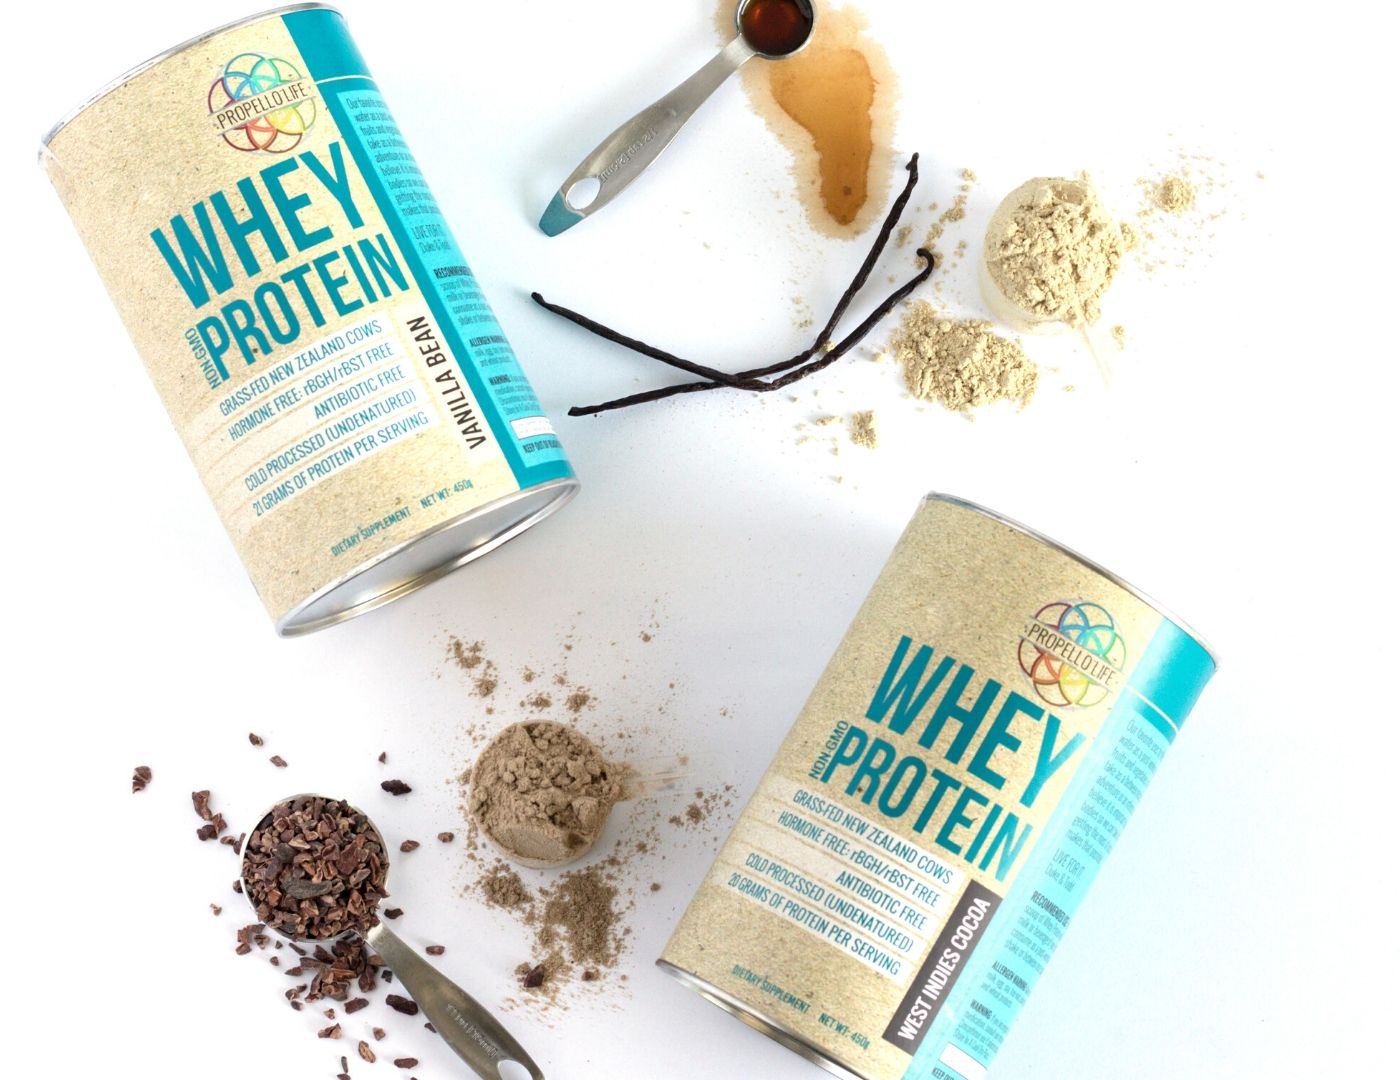 Propello Life natural premium supplements non-gmo whey protein grass-fed hormone free cold processed